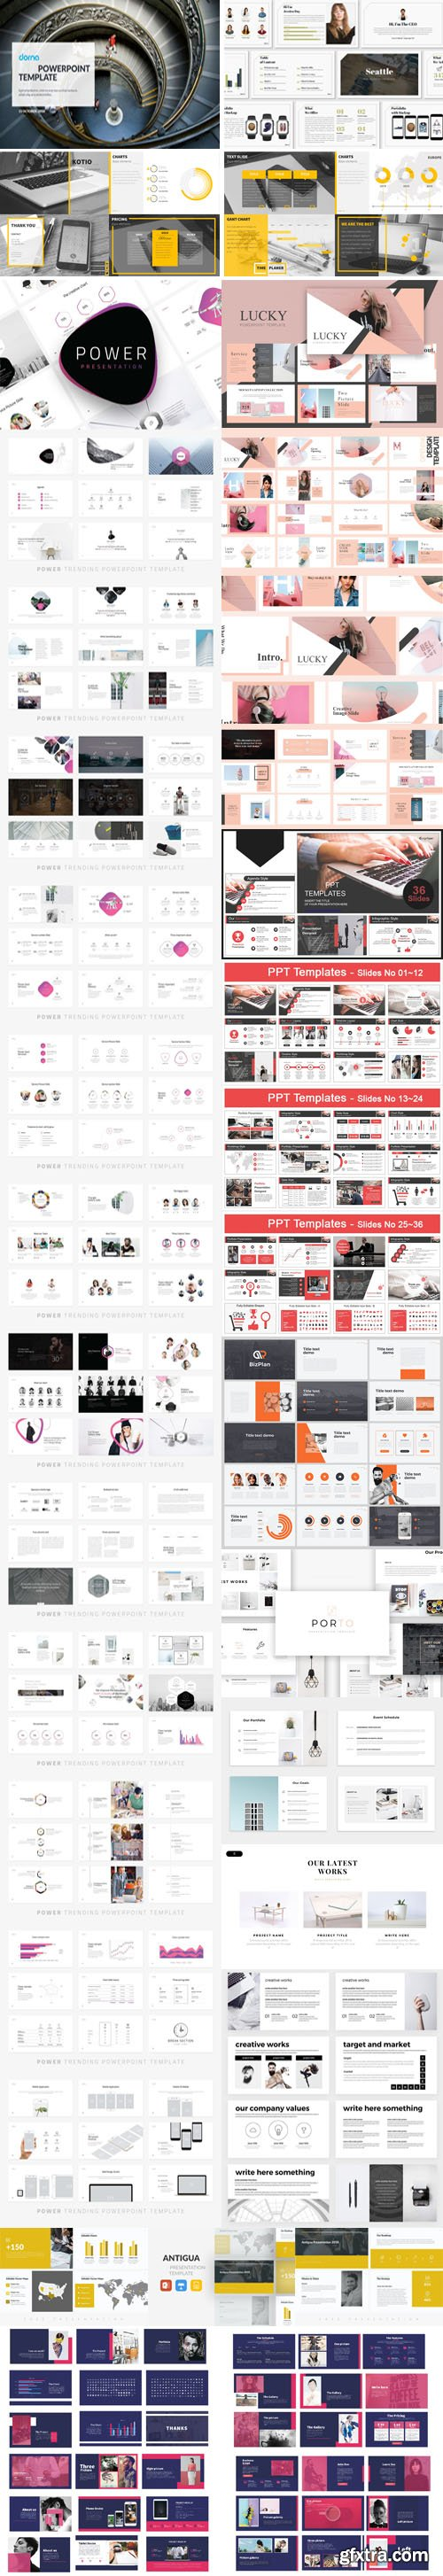 13 PowerPoint Templates & Themes 2018 for a Professional Presentation